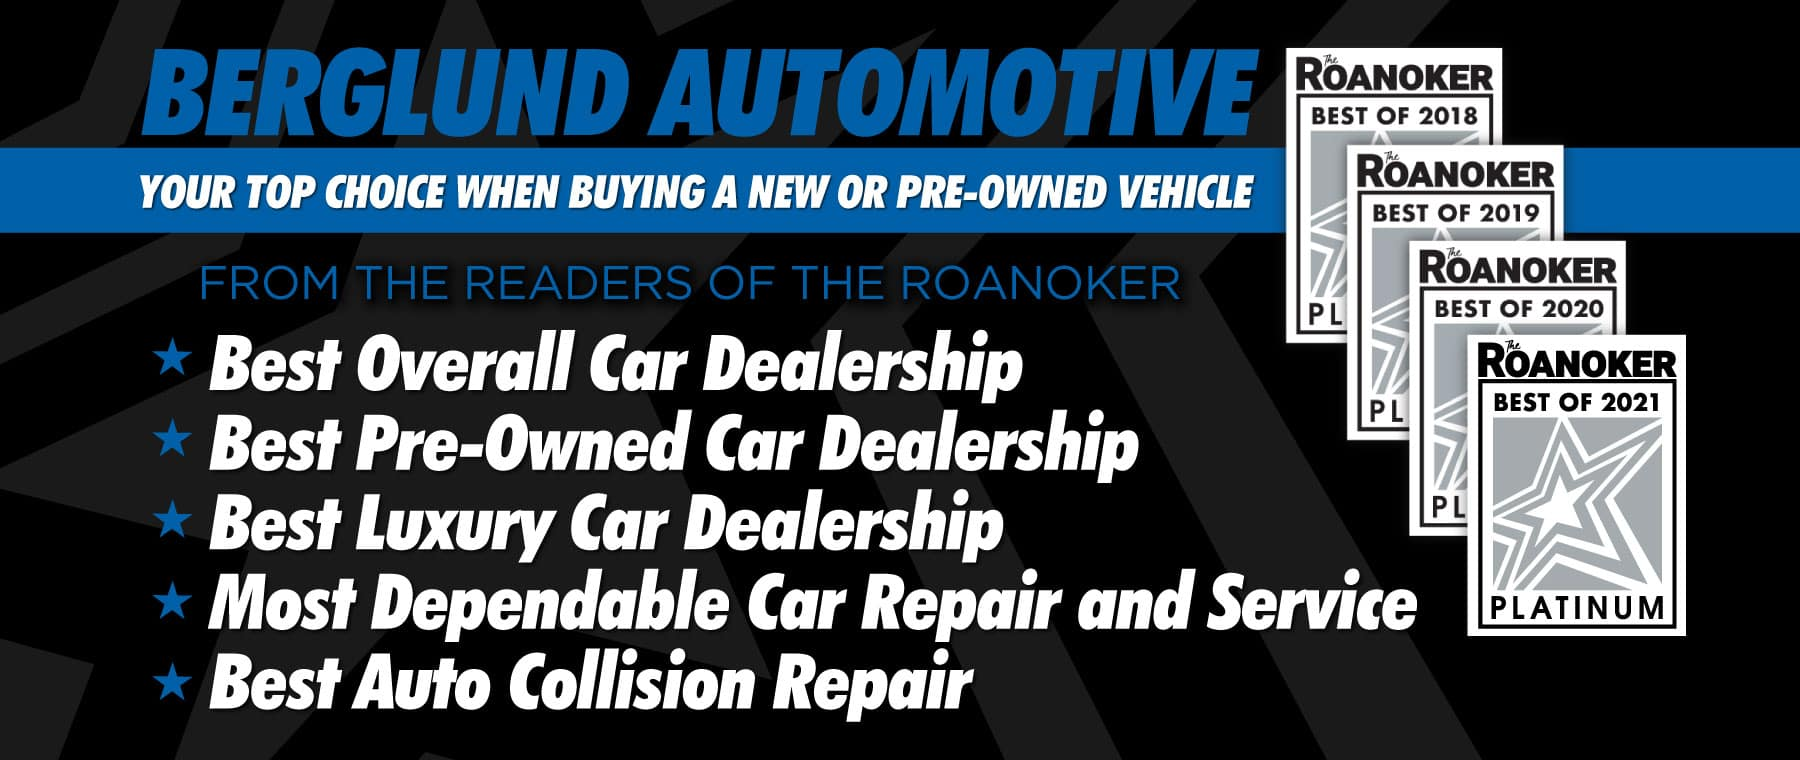 Berglund Automotive - Your Top Choice When Buying a New or Pre-Owned Vehicle